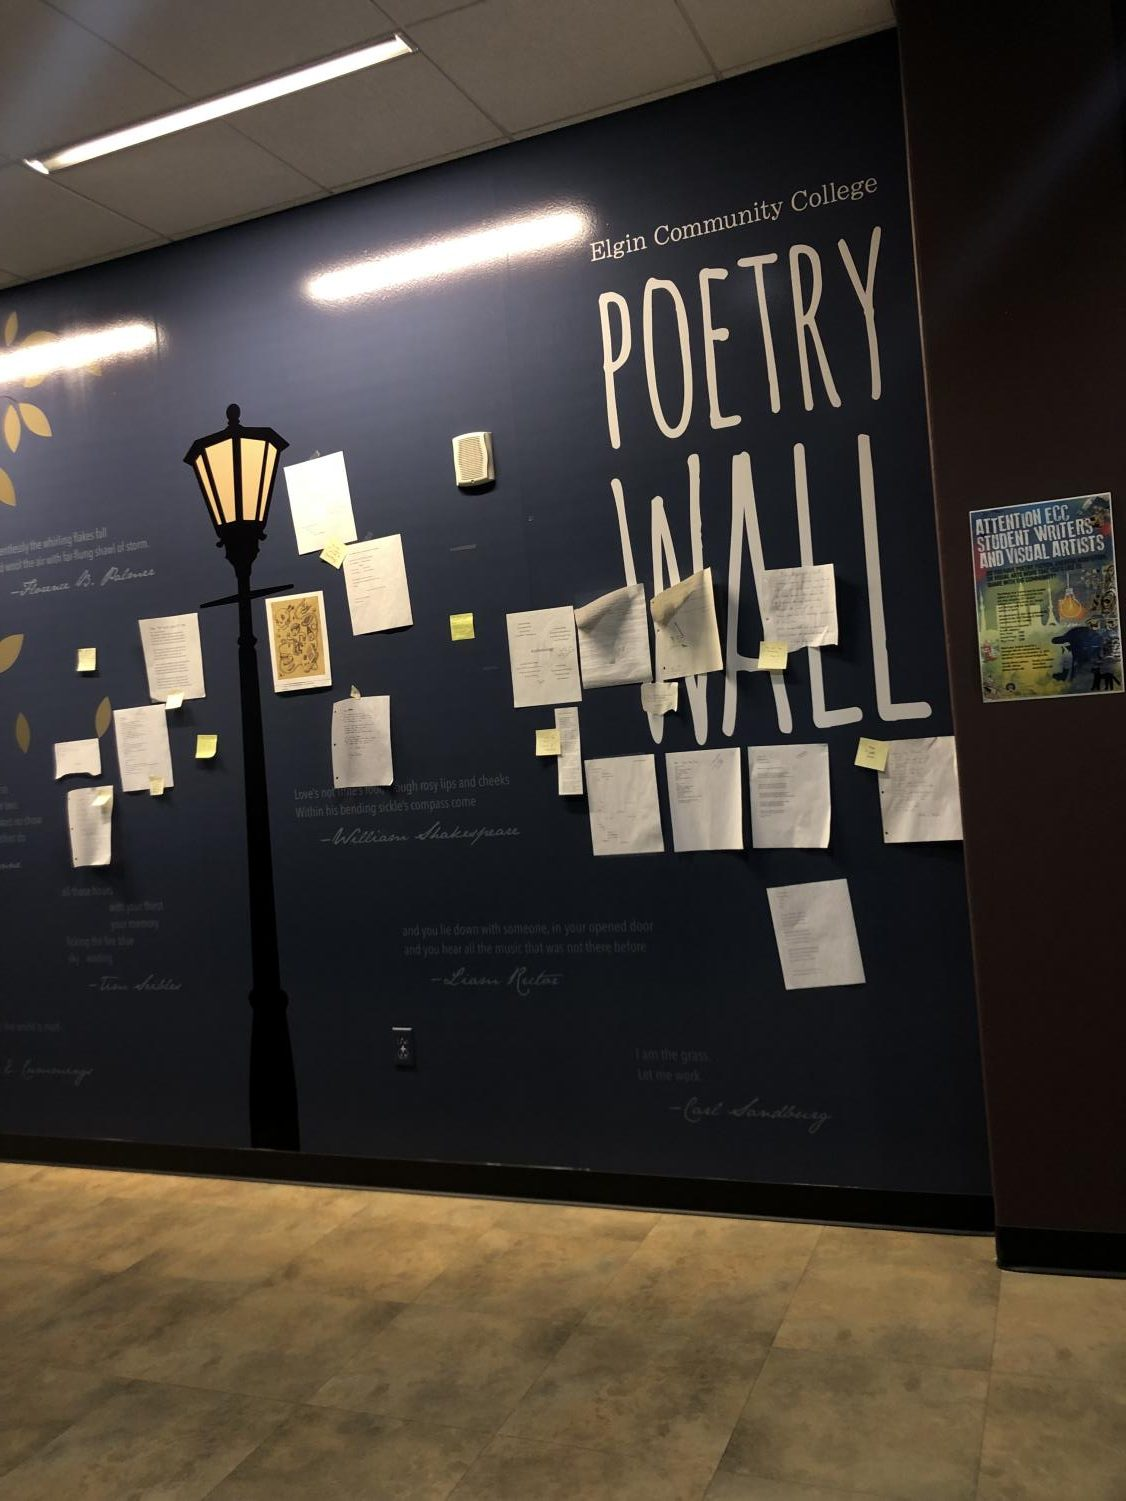 Coffee House was held in the B270 lounge, right next to the poetry wall.